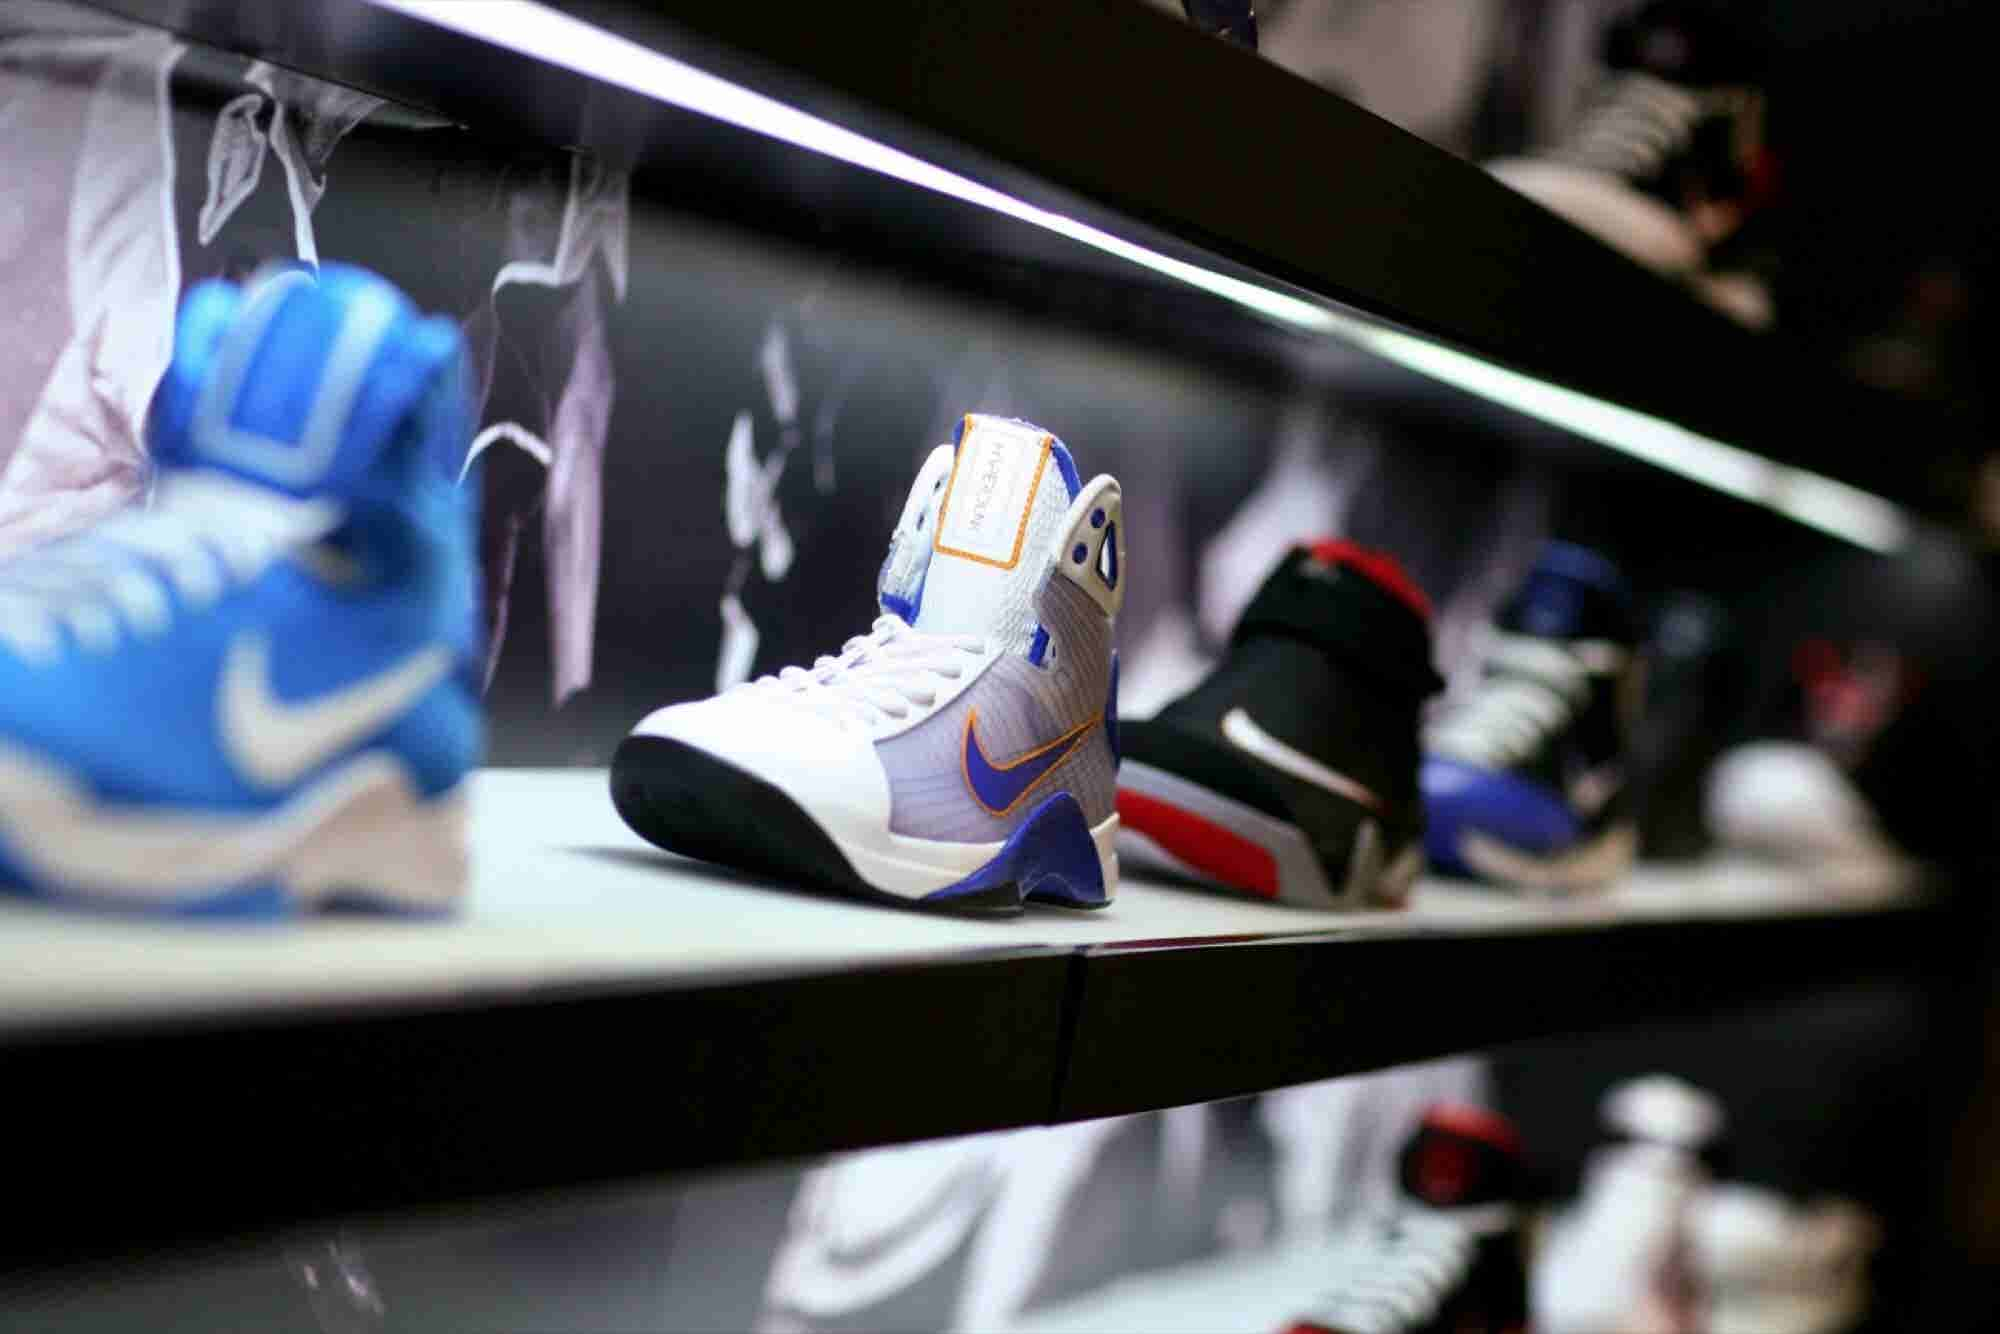 Why I Bought 100 Pairs of Sneakers for My Team